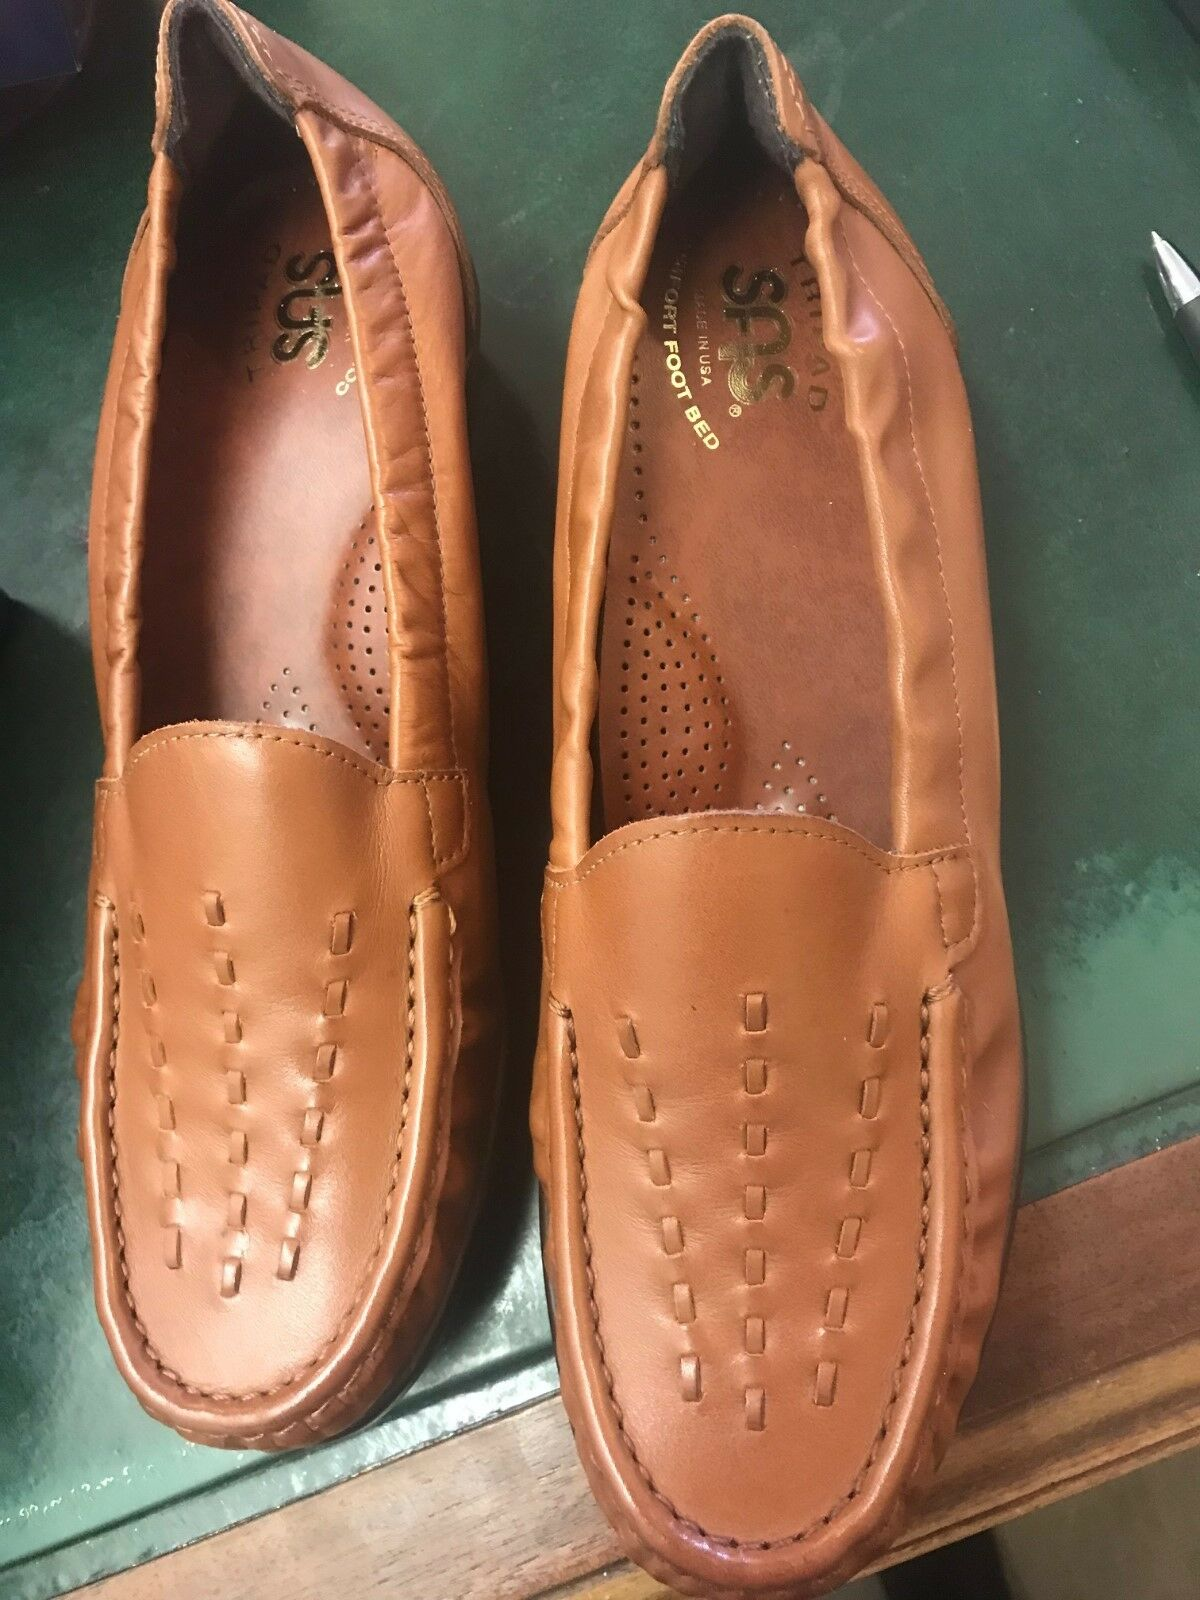 Authentic SAS shoes shoes shoes brand new never been worn  size 7.5 weave chestnut 928a1e